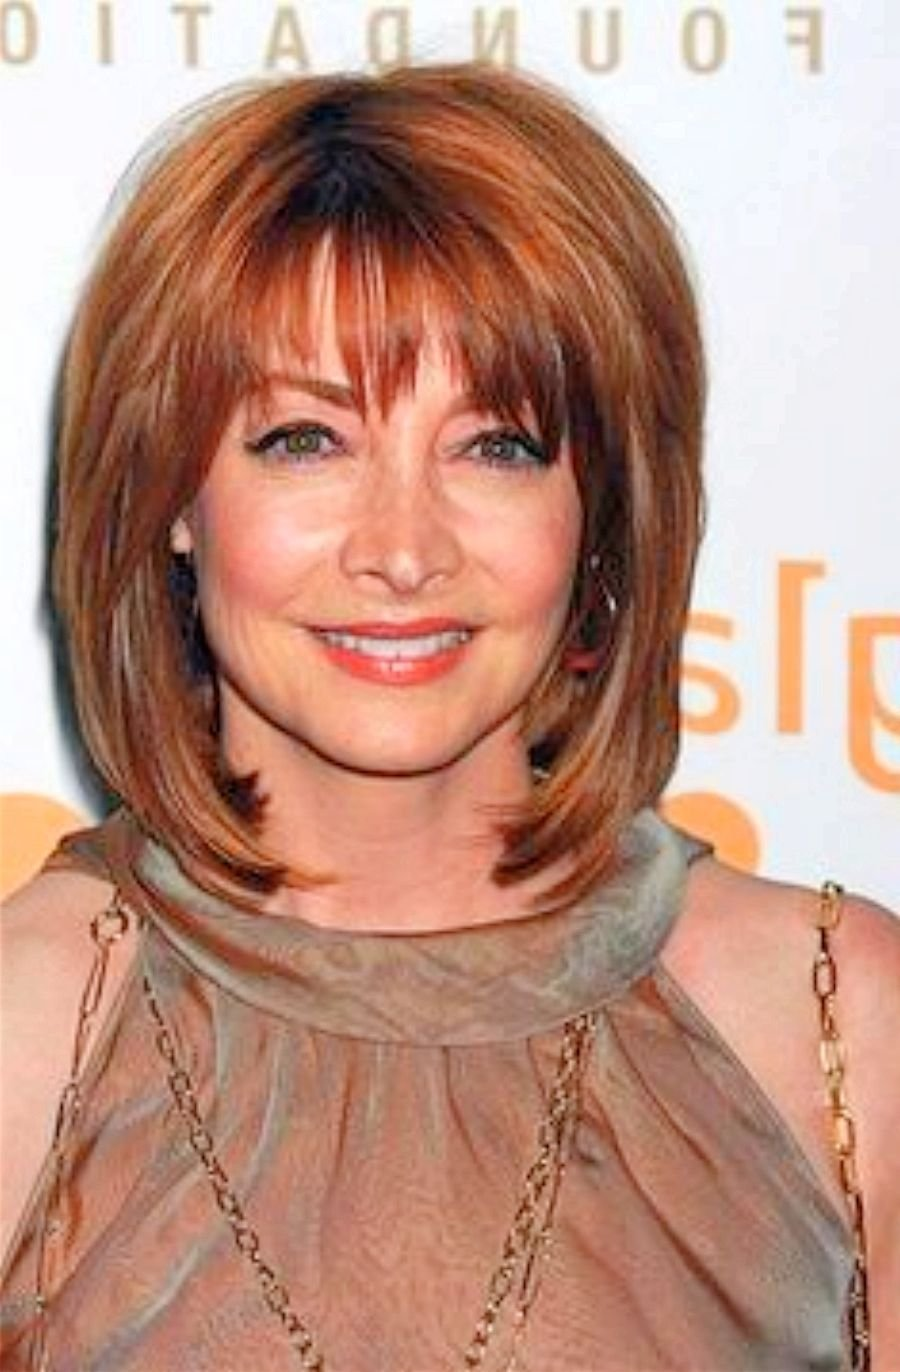 The Best Stylish Medium Length Hairstyles For Women Over 50 Elle Hairstyles Pictures